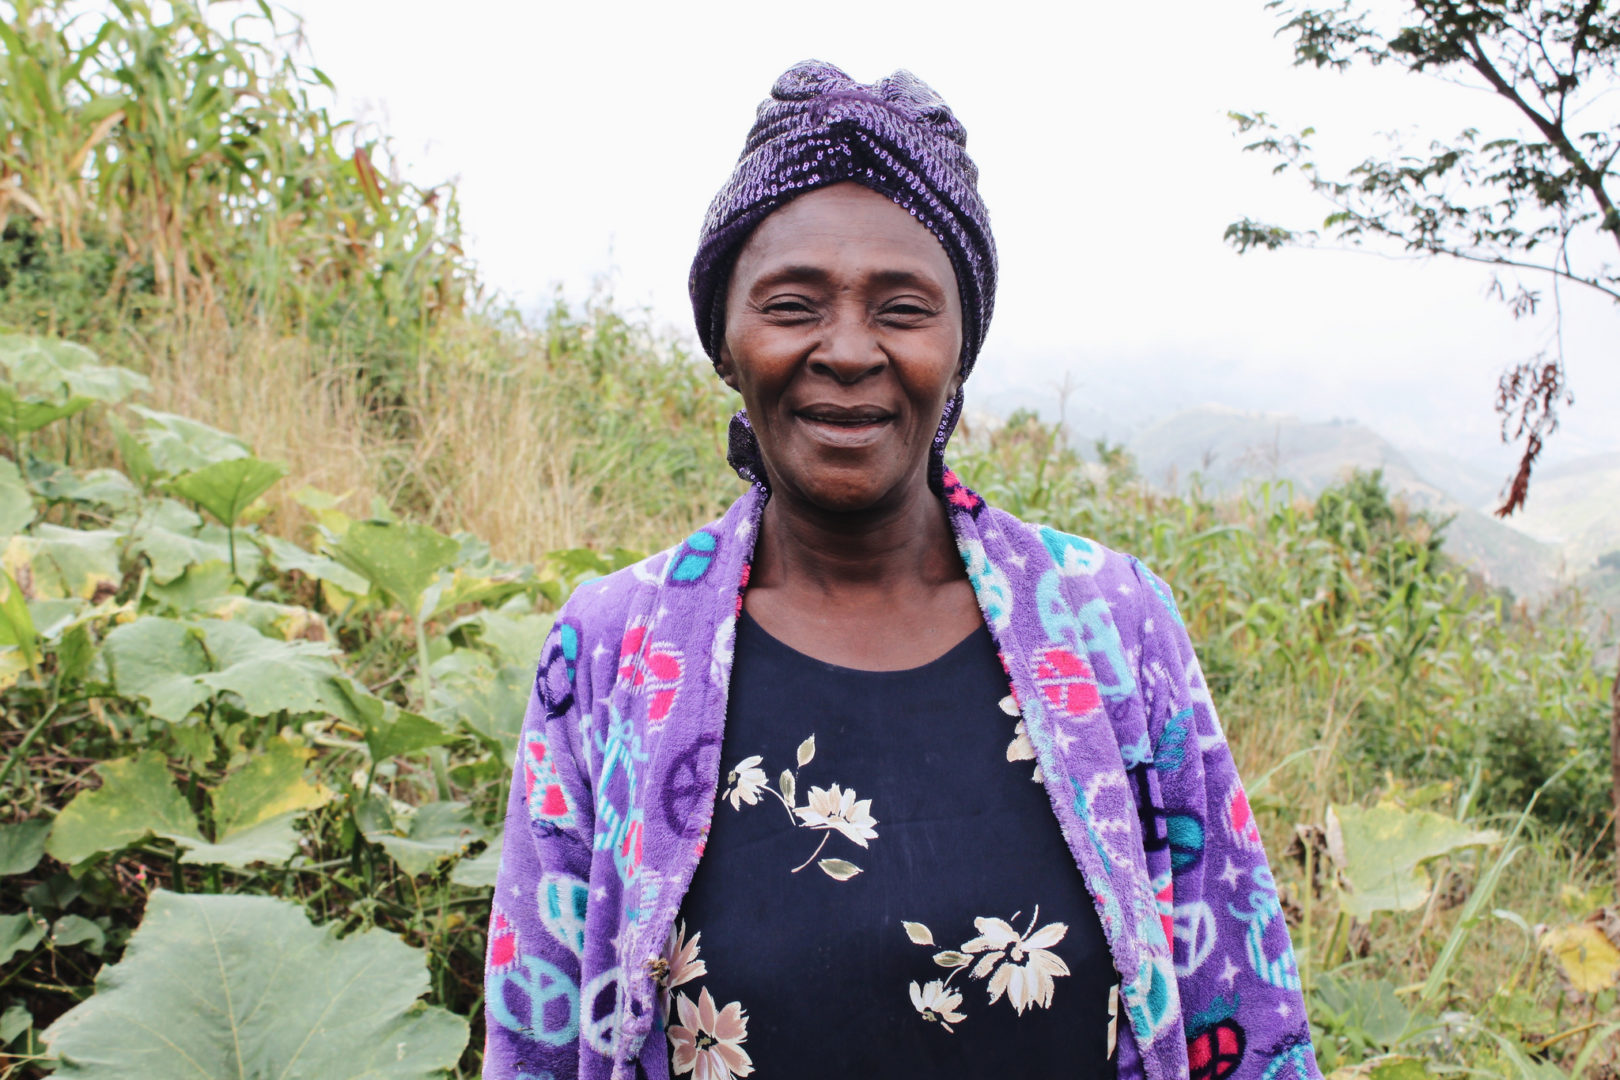 Empowerment writes a different story in the hills of Haiti